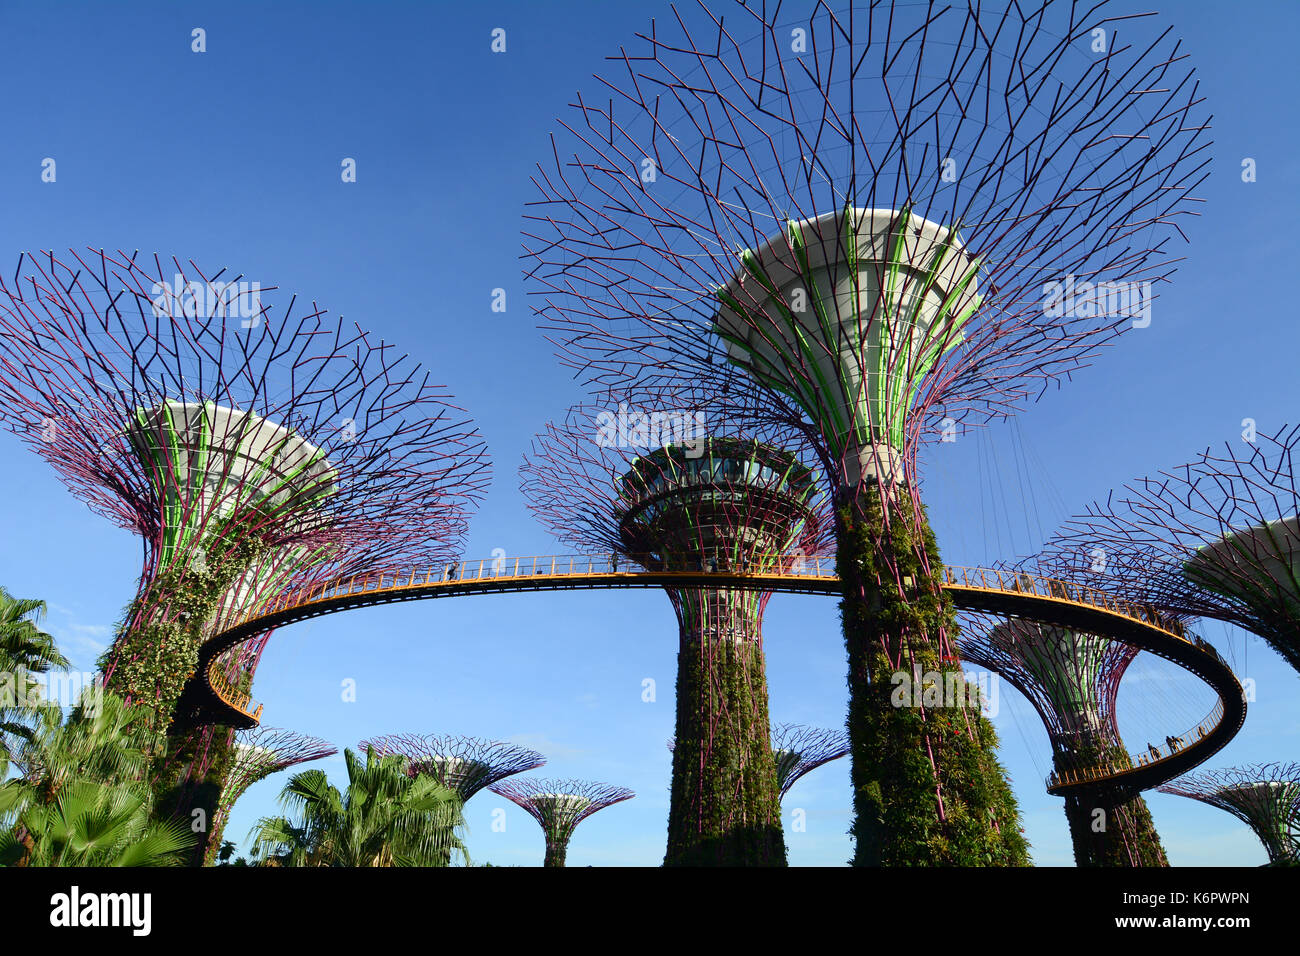 Singapore - Mar 12, 2016. Supertree Grove at the Gardens by the Bay in Singapore. The supertrees are much more than an ostentatious display of contemp - Stock Image